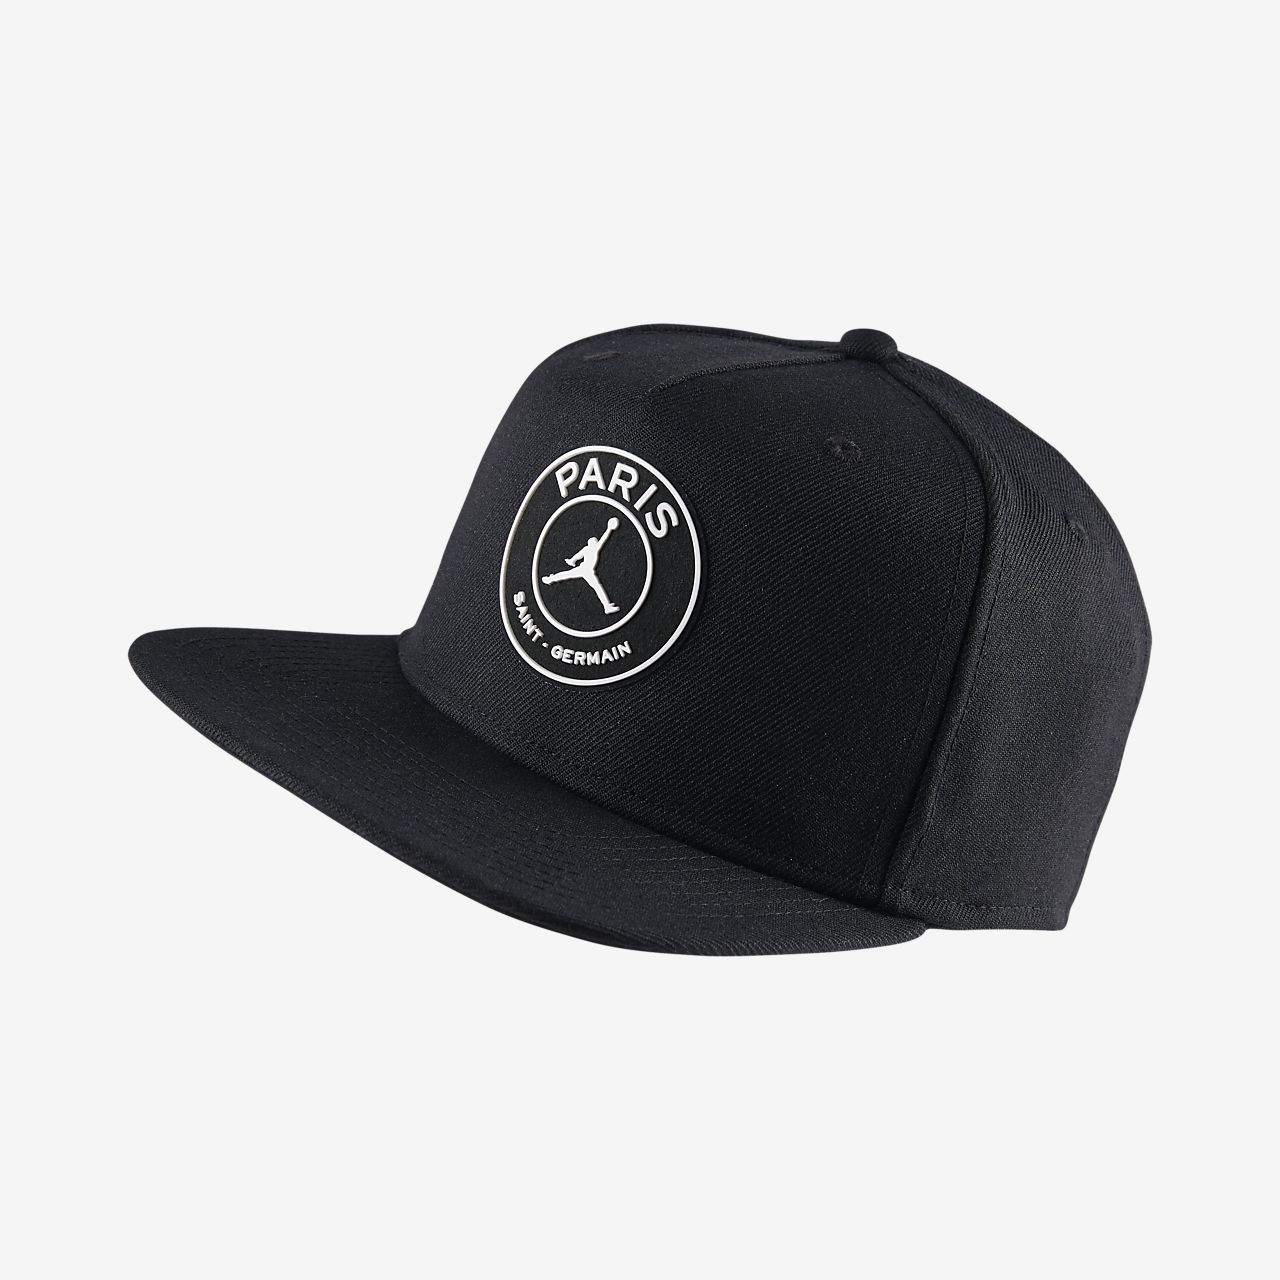 47b8a31e15f store paris saint germain pro adjustable hat 54a79 37875